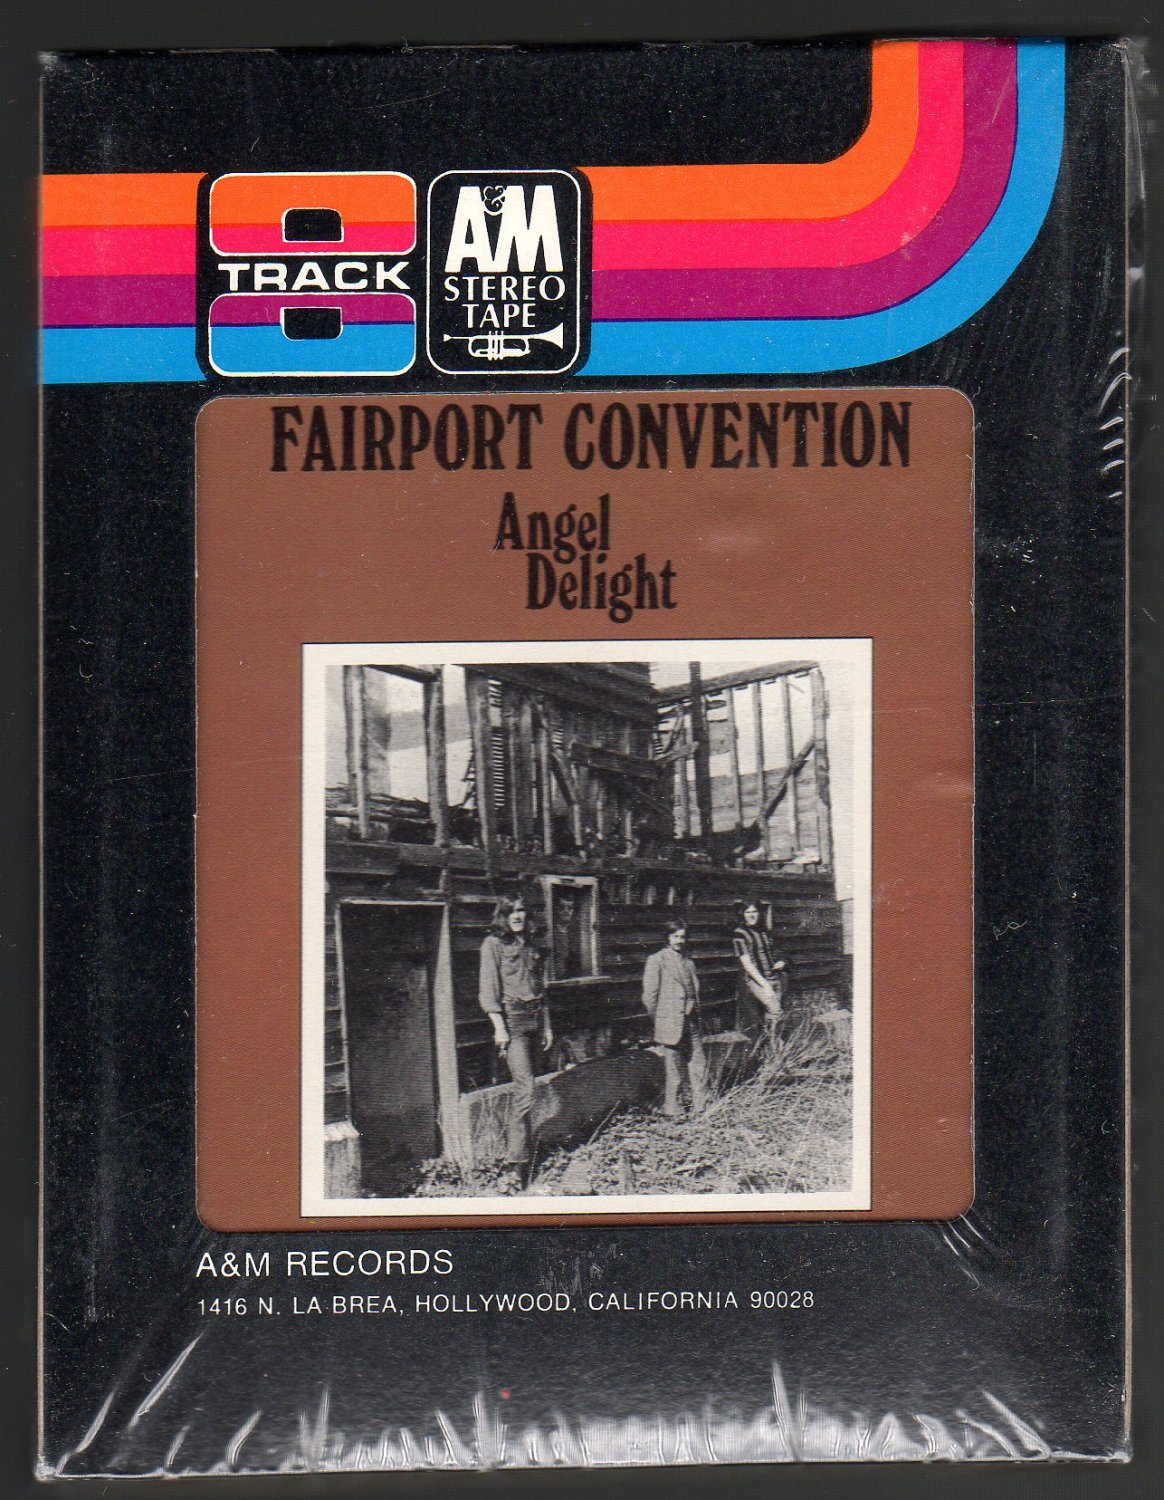 Fairport Convention - Angel Delight 1971 A&M Sealed A23 8-TRACK TAPE